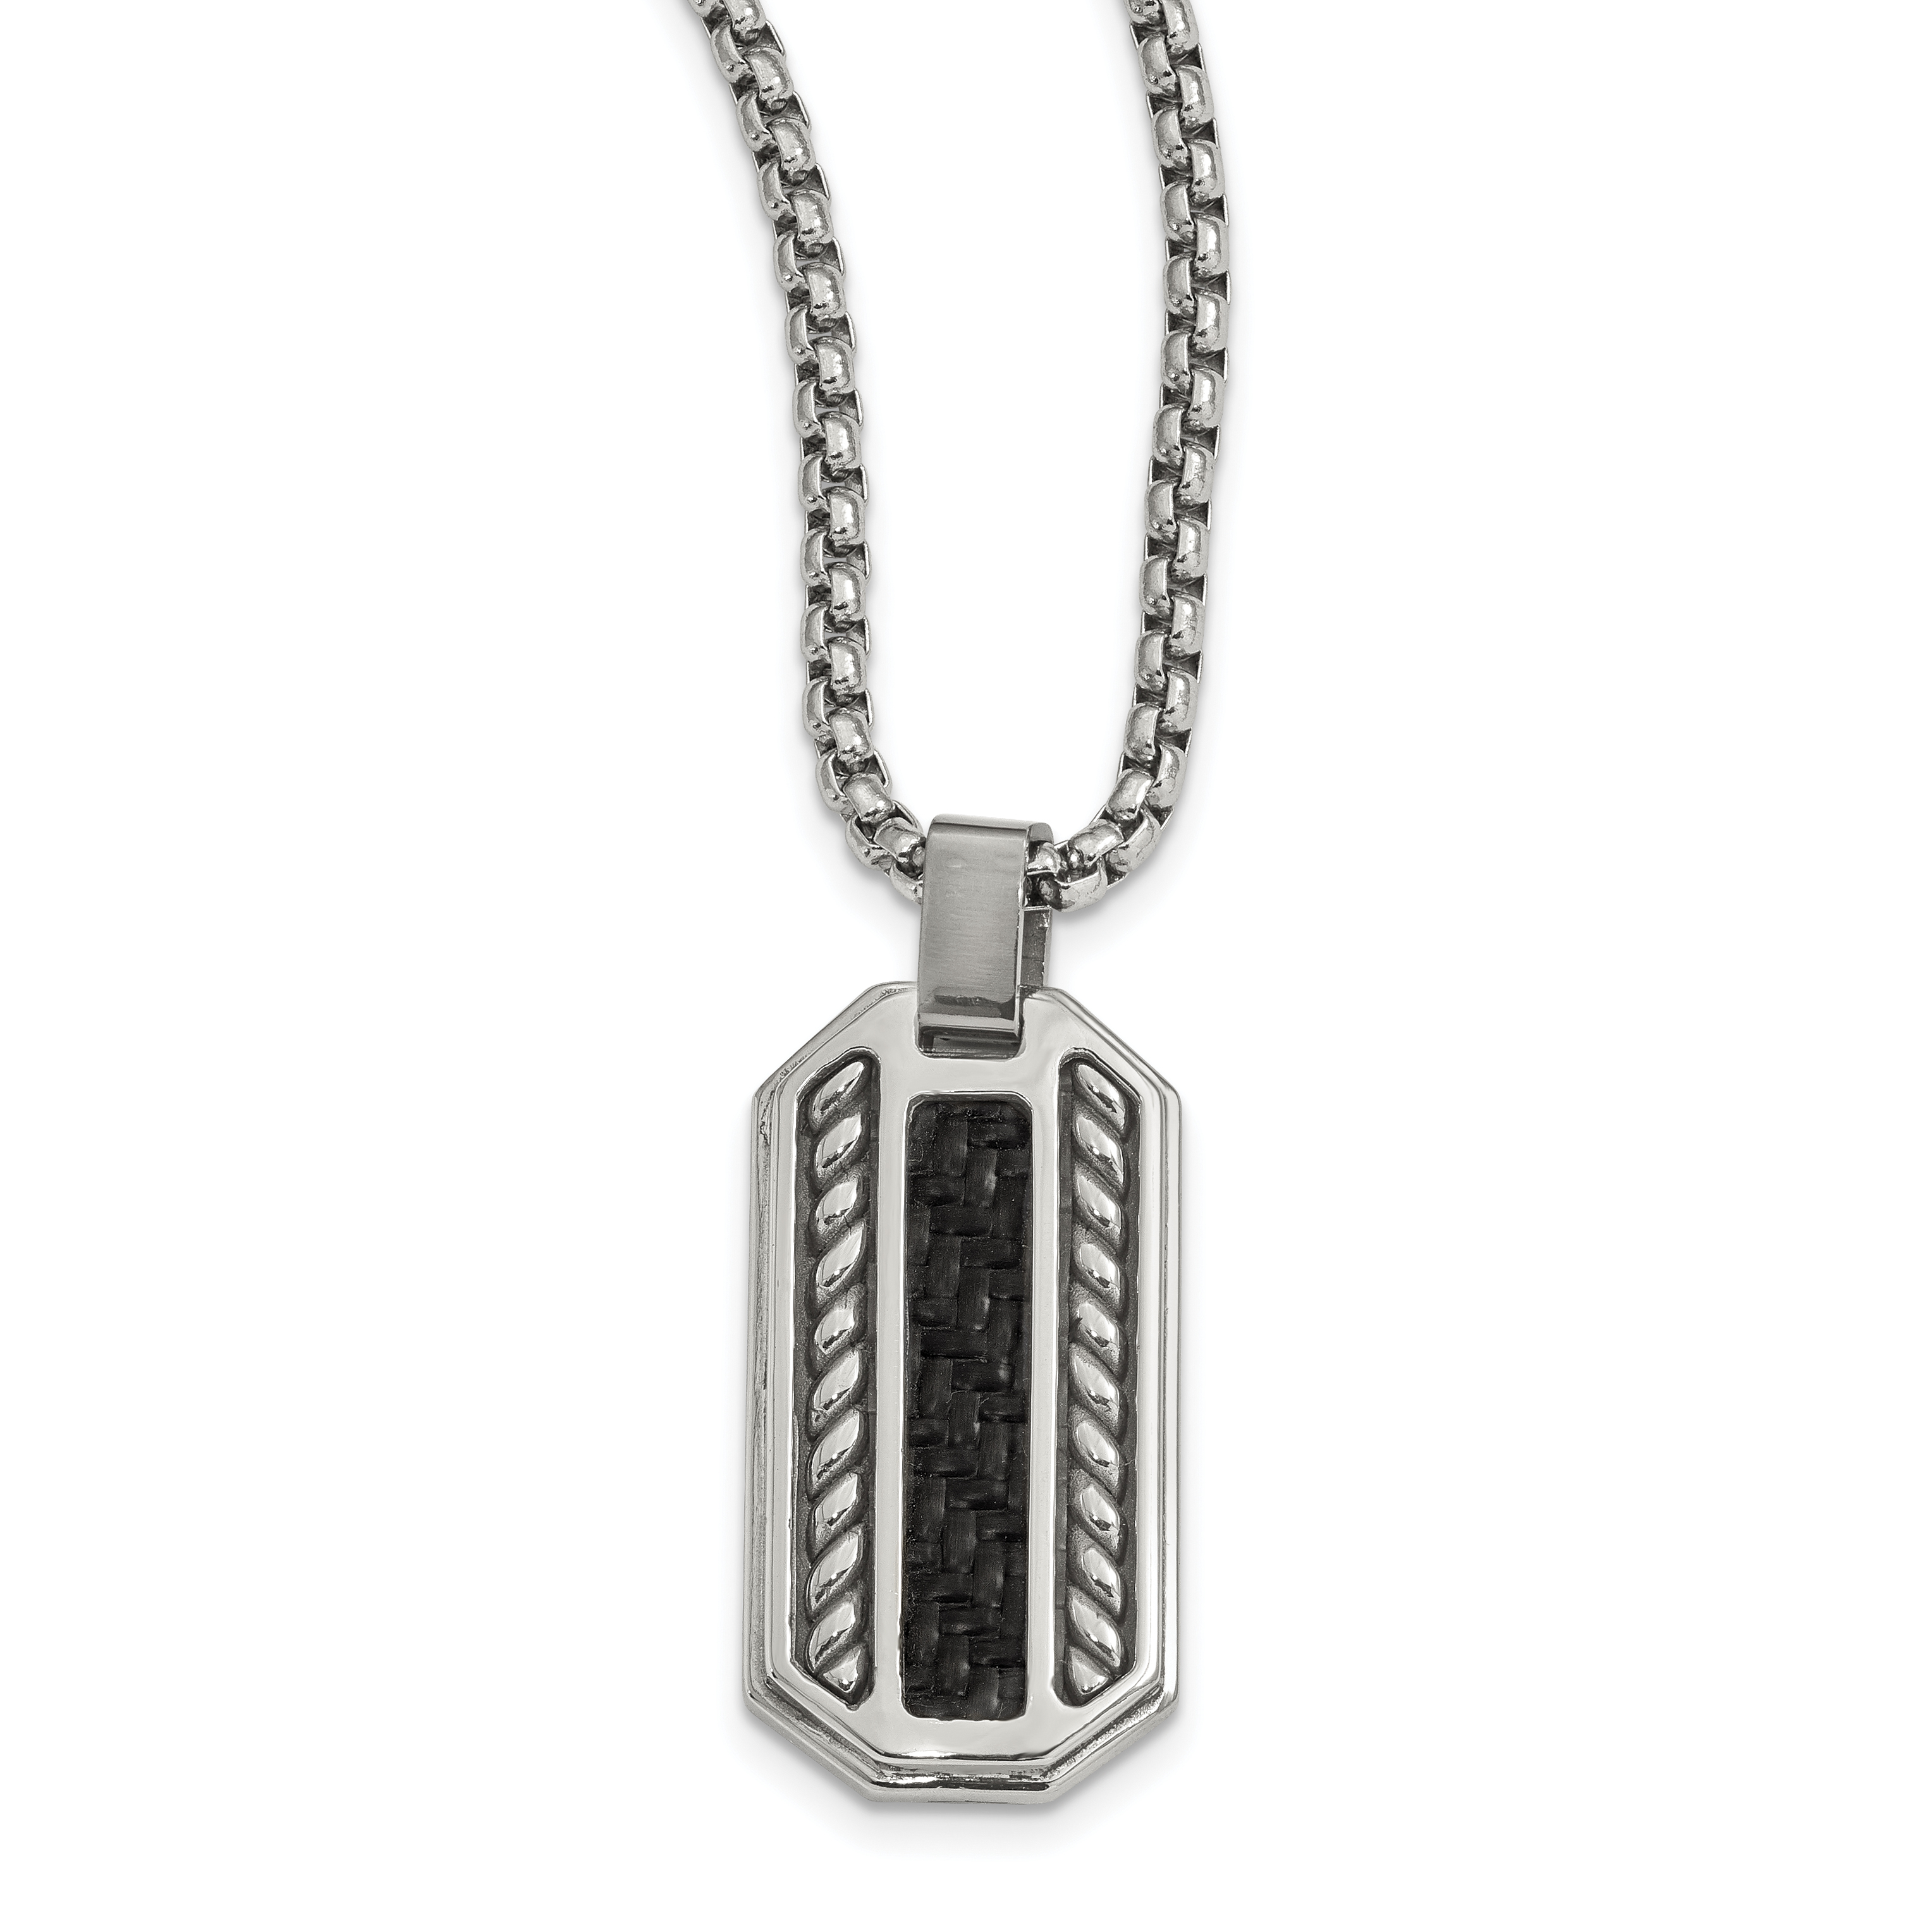 Edward mirell stainless steel black carbon fiber dog tag pendant edward mirell stainless steel black carbon fiber dog tag pendant necklace aloadofball Gallery